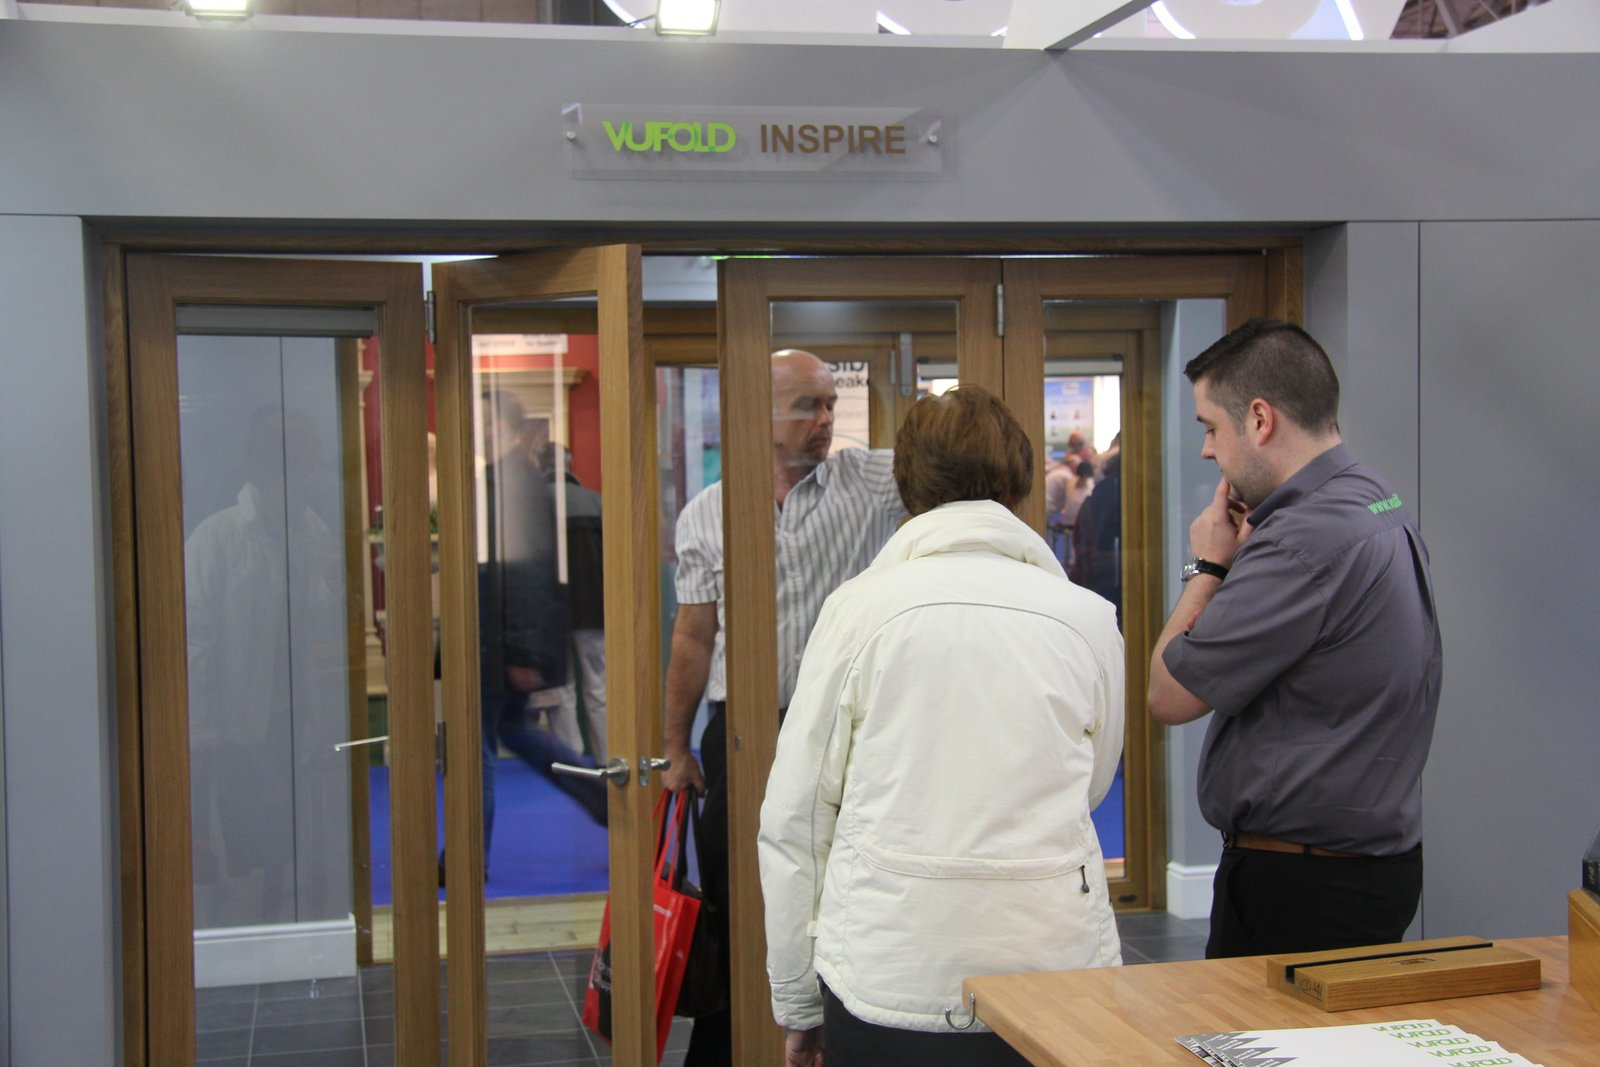 David answering questions about the Inspire Internal Folding doors